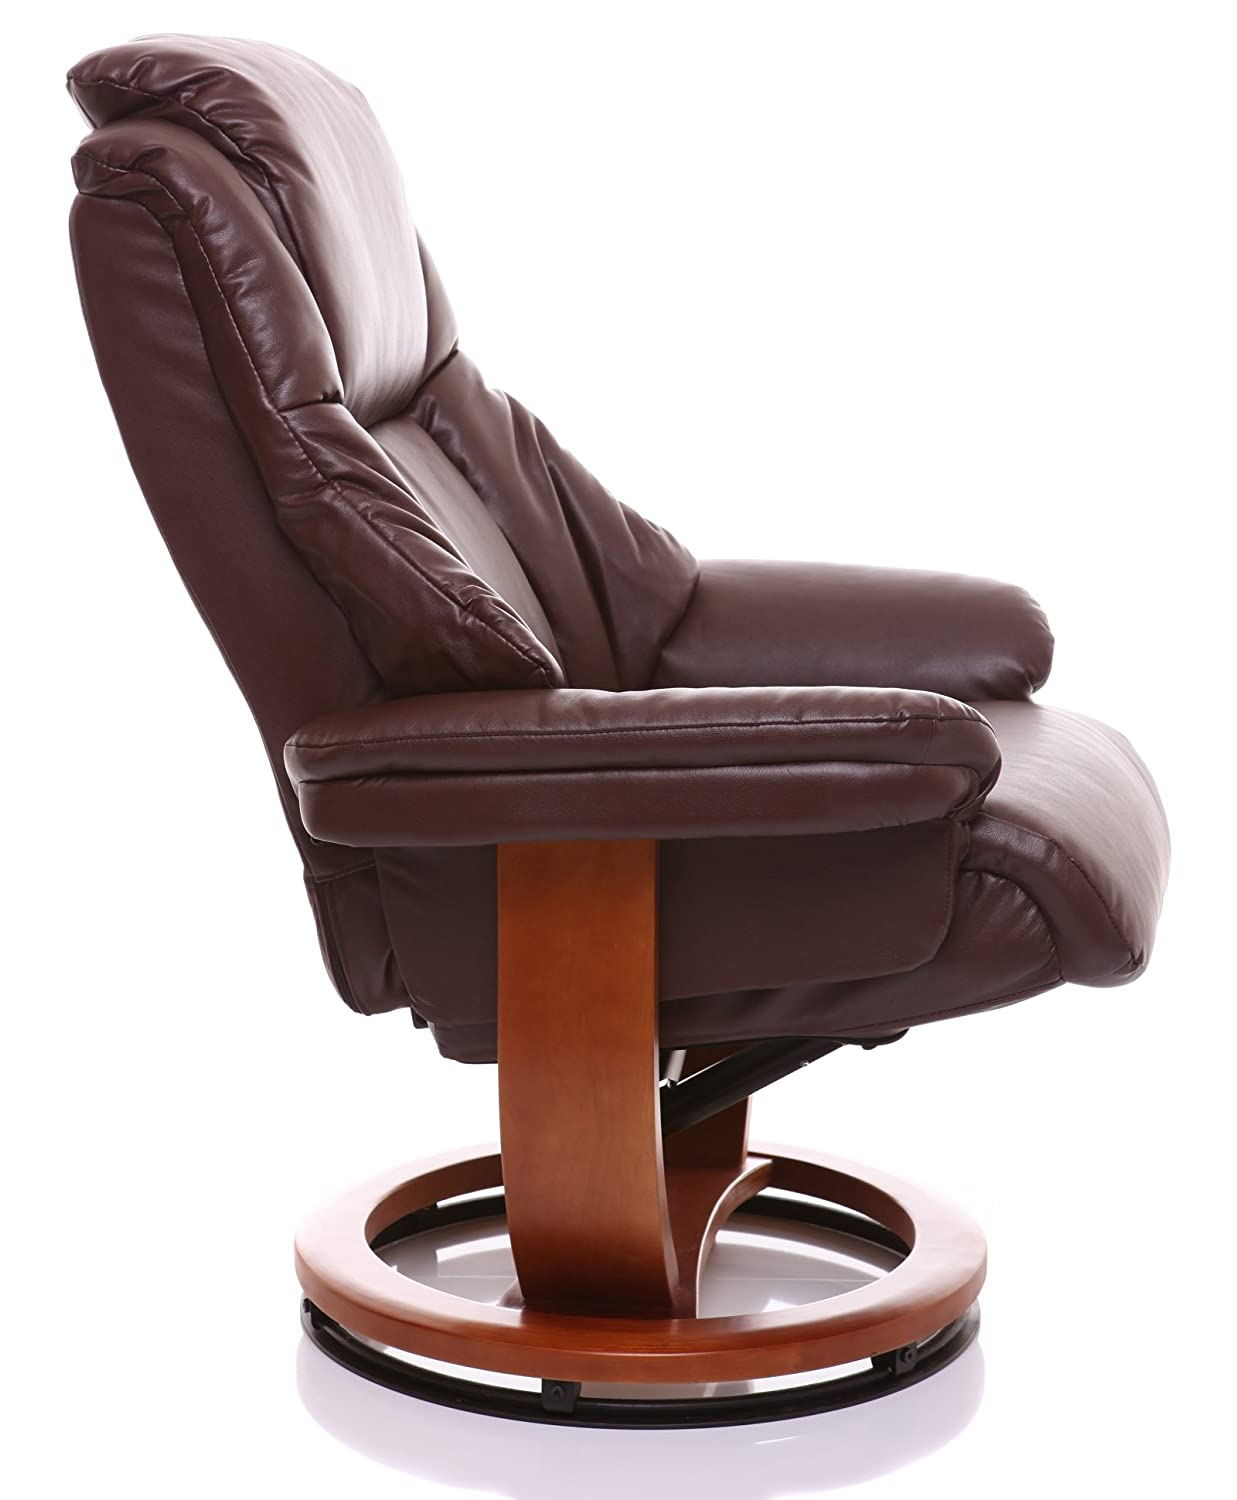 The Emperor   Bonded Leather Recliner Swivel Chair U0026 Matching Footstool In  Nut Brown: Amazon.co.uk: Kitchen U0026 Home